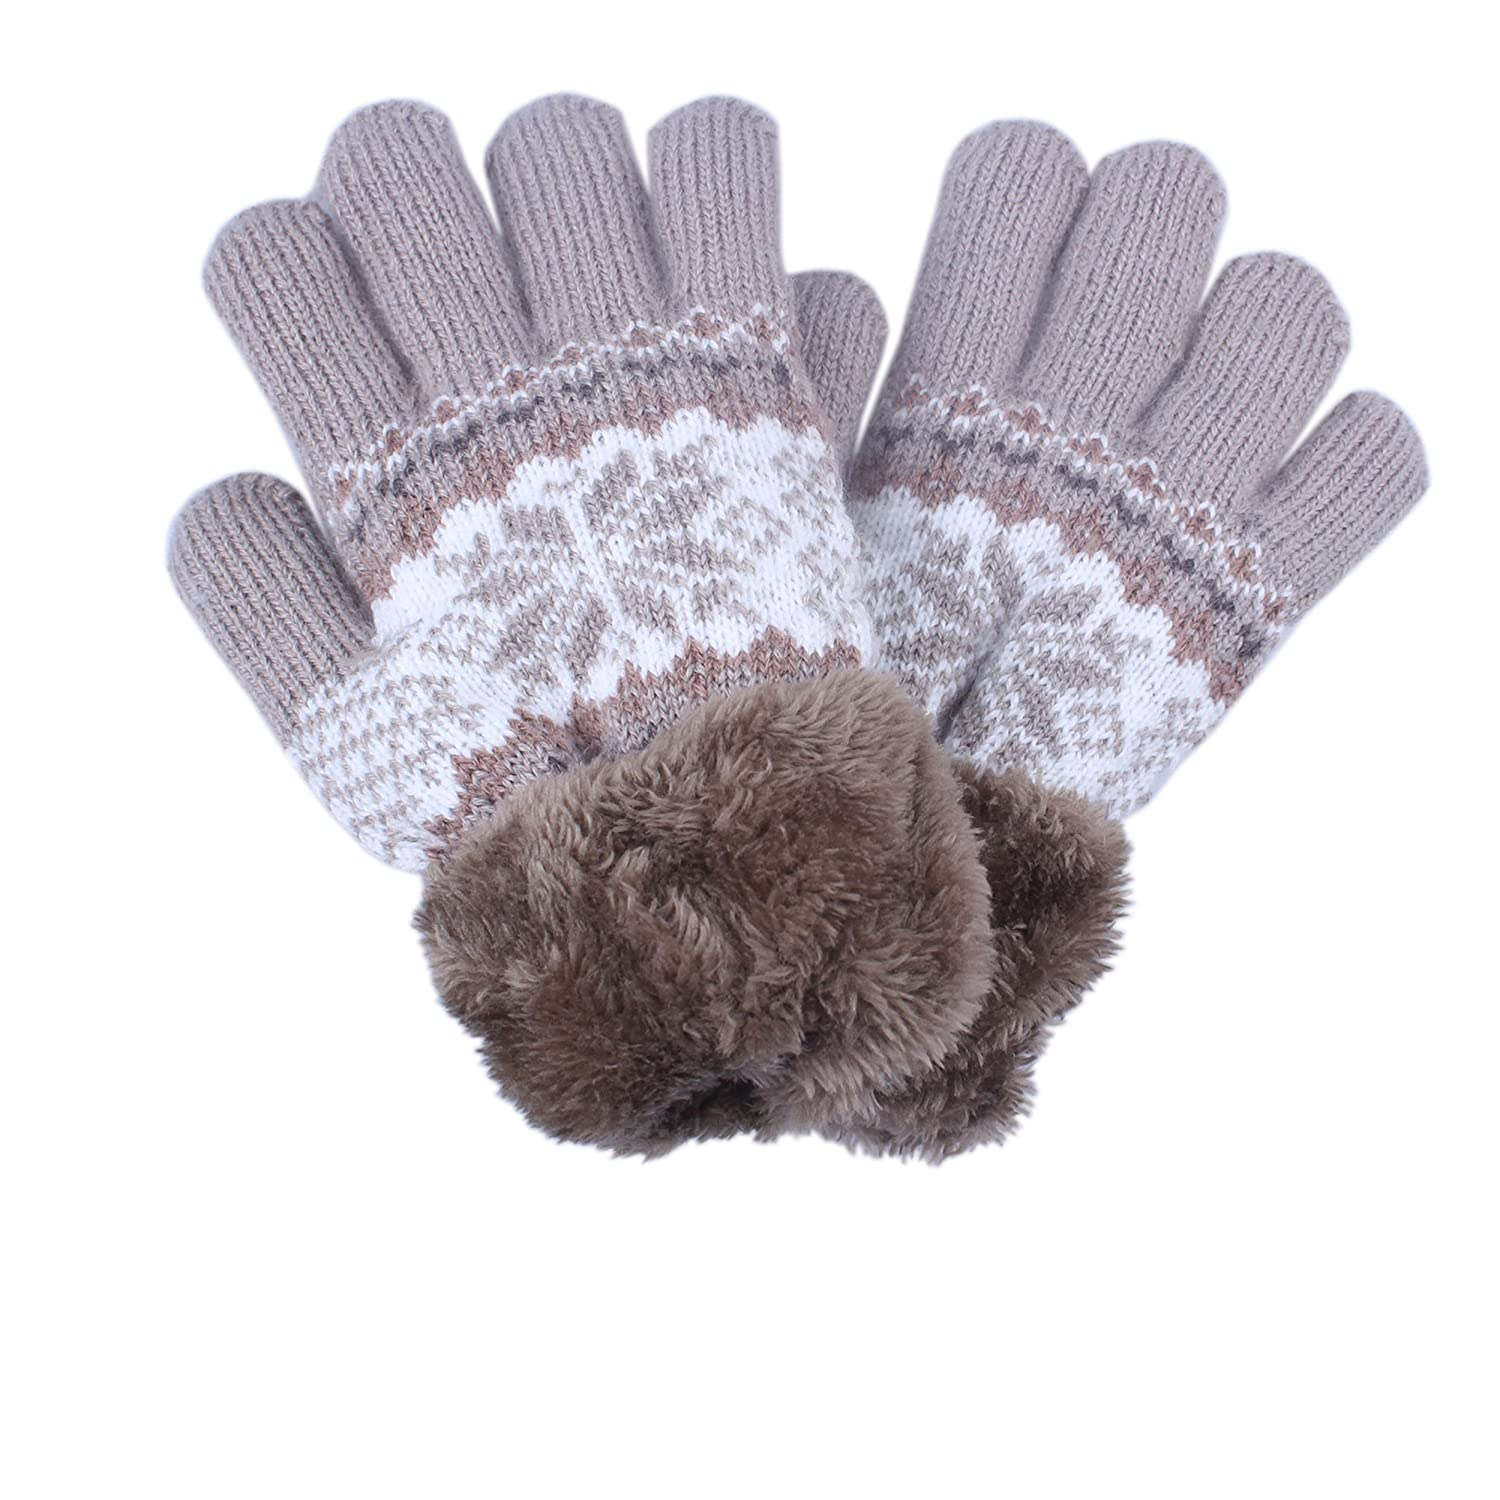 2Pairs Youth Boy Girls Women Winter gloves with Thicken Sherpa Lined kimmyku KM915-14